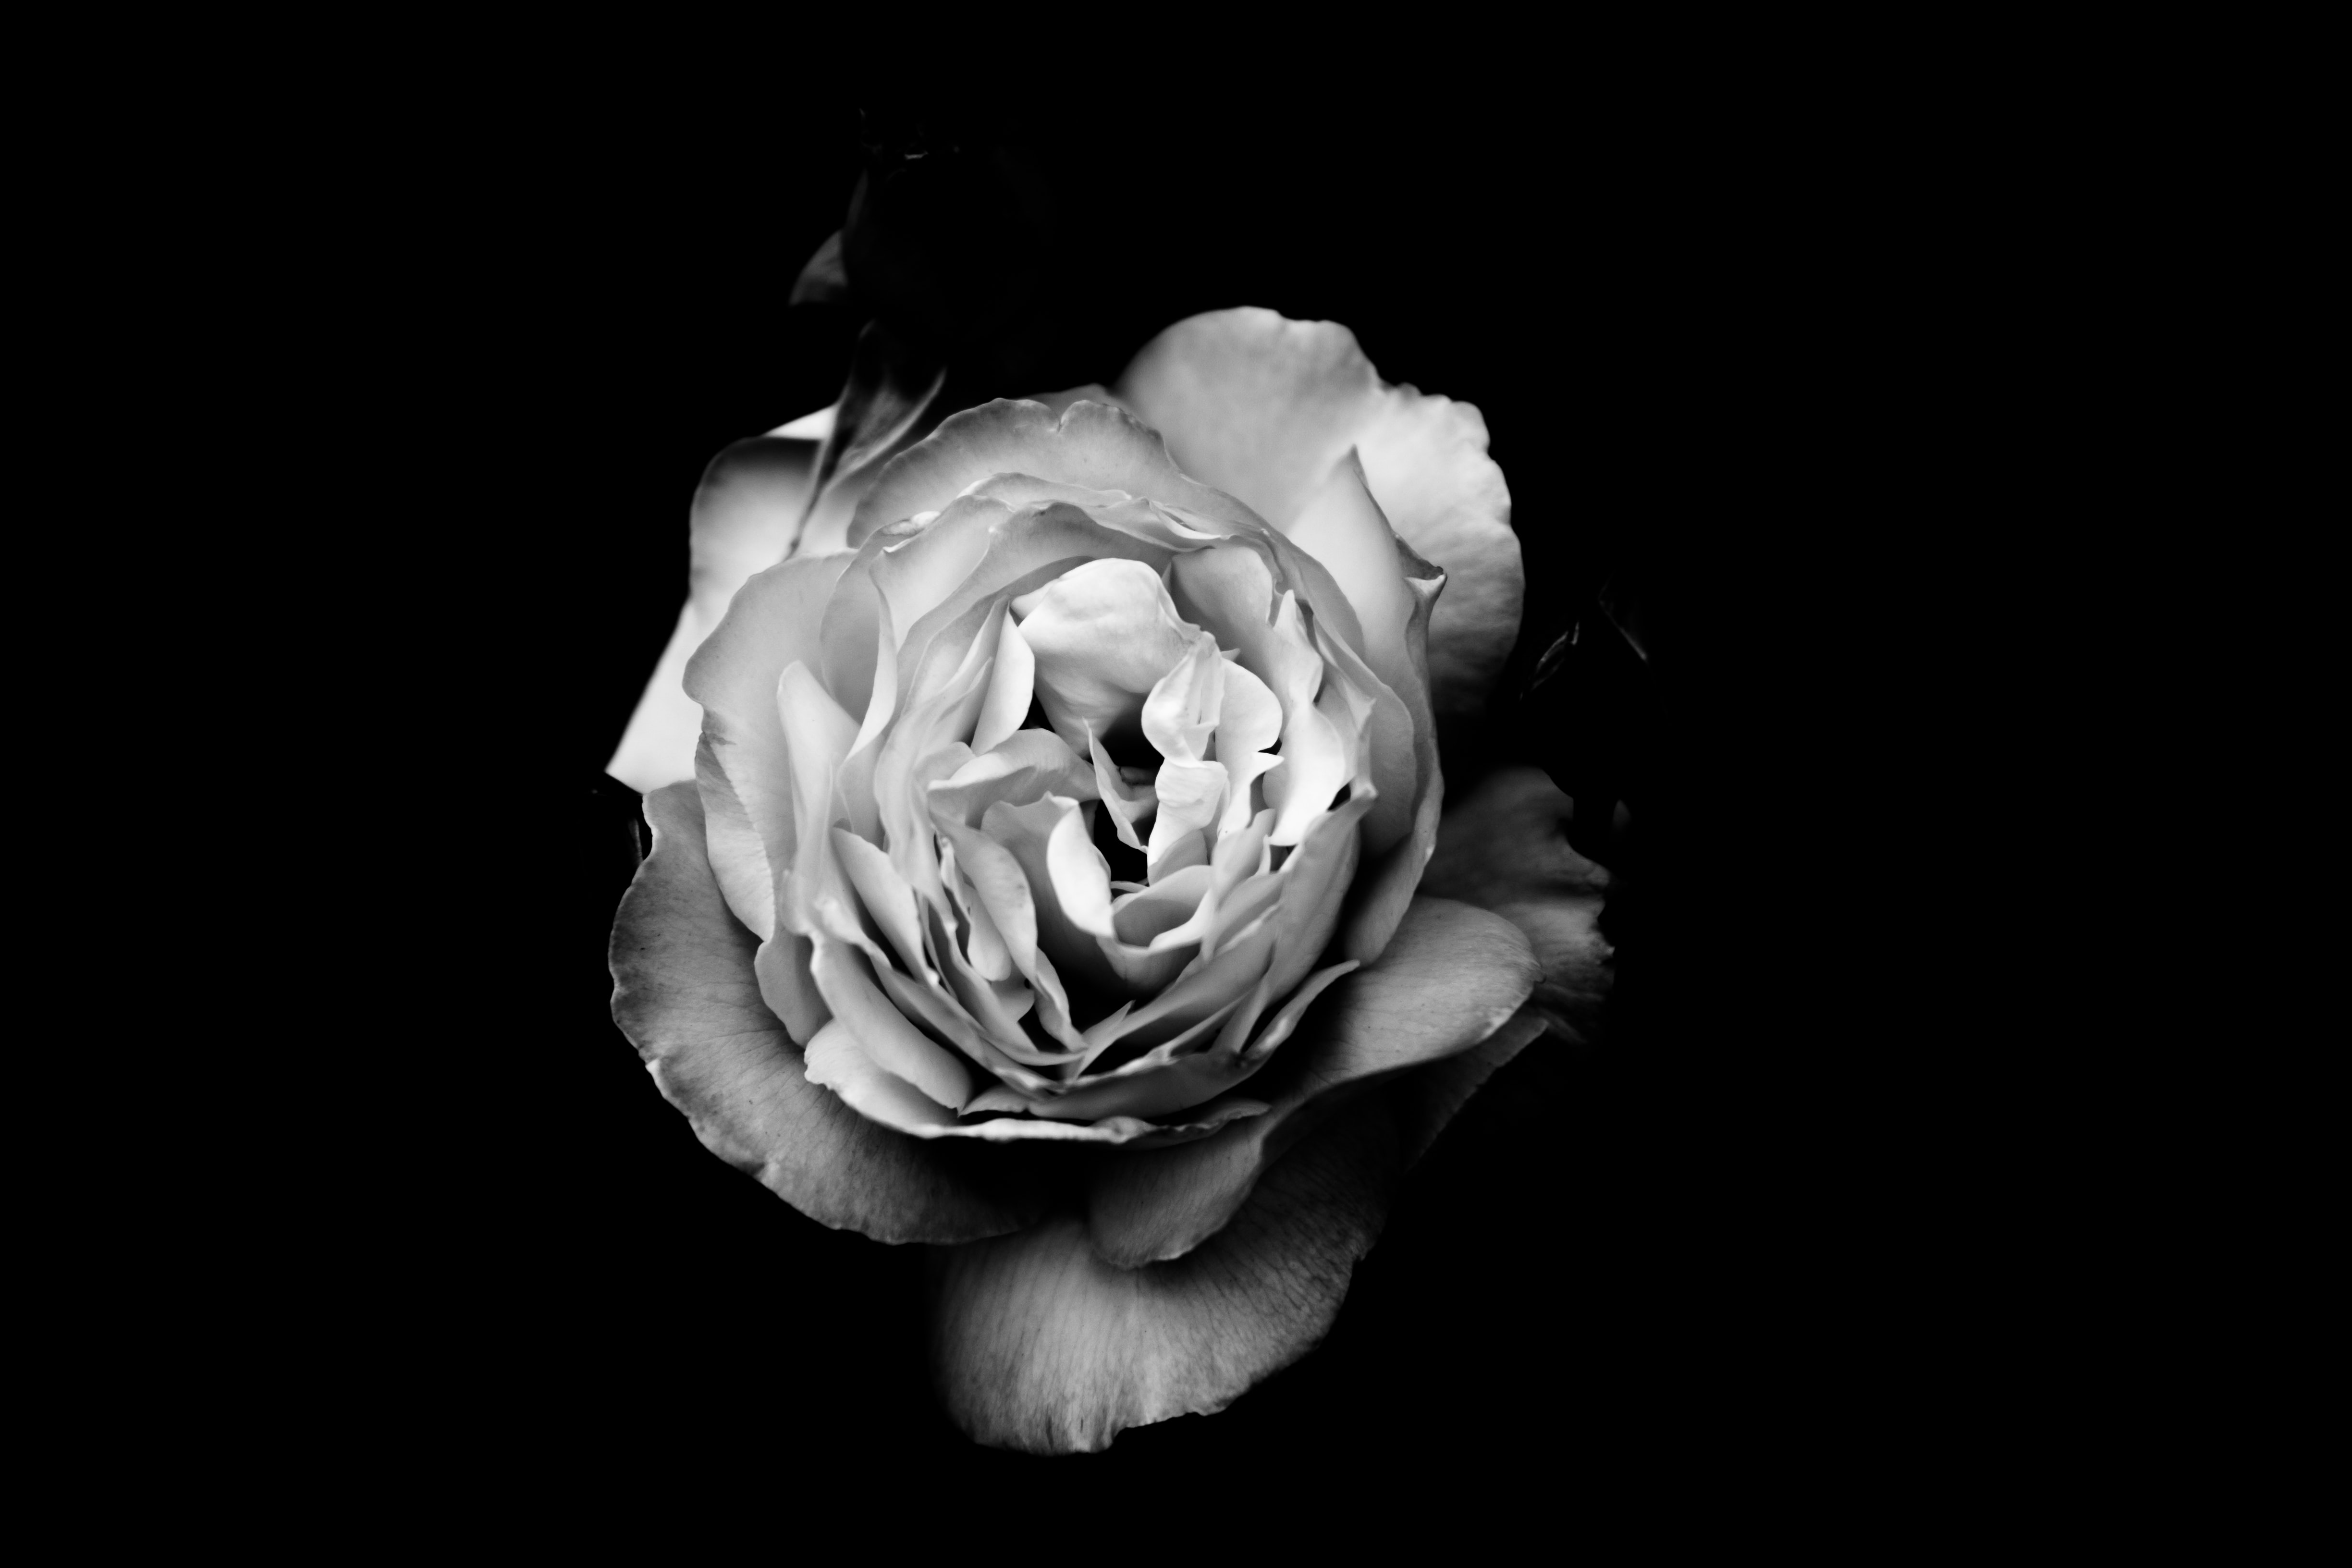 Black and white macro shot of white rose on dark background